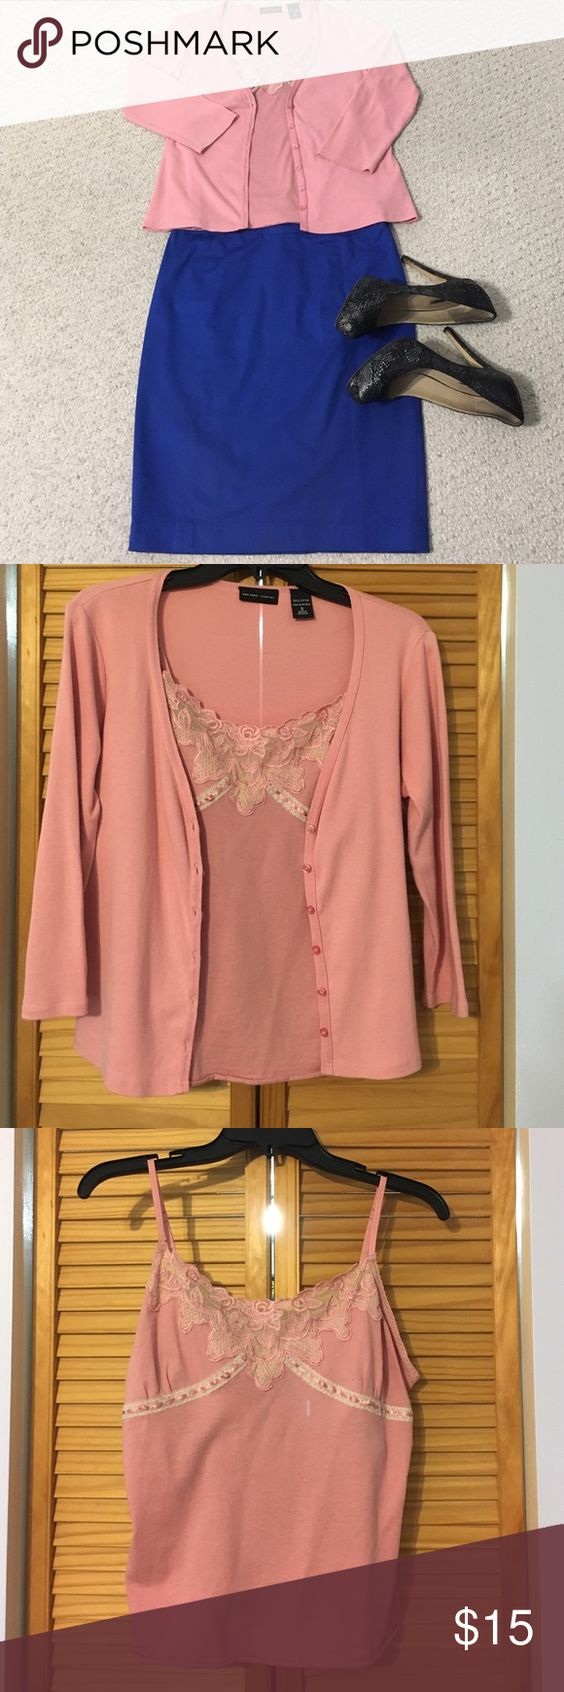 Cute Pink Sweater Set With Lace | Sweater cardigan, Lace and EA